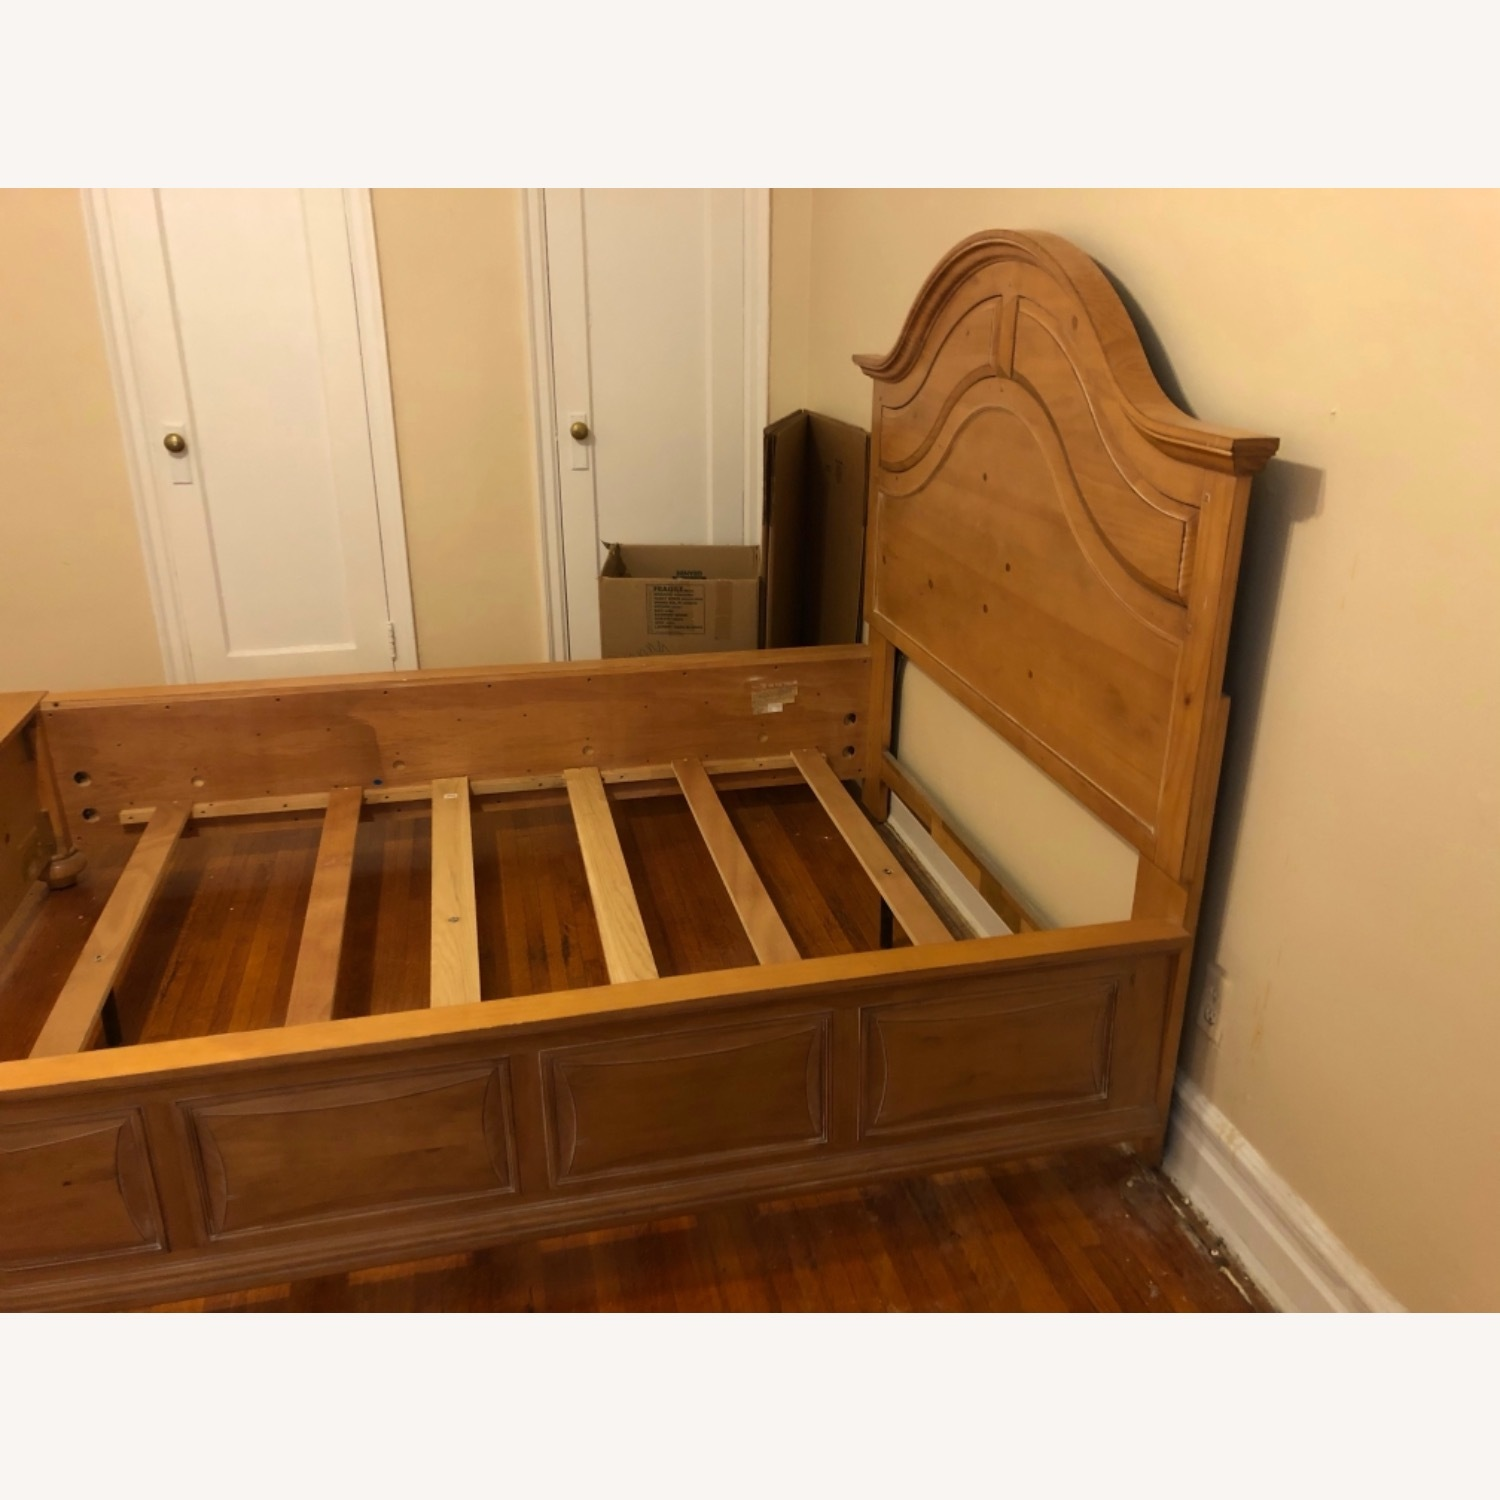 Broyhill Furniture Solid Wood Queen Size Bed - image-2